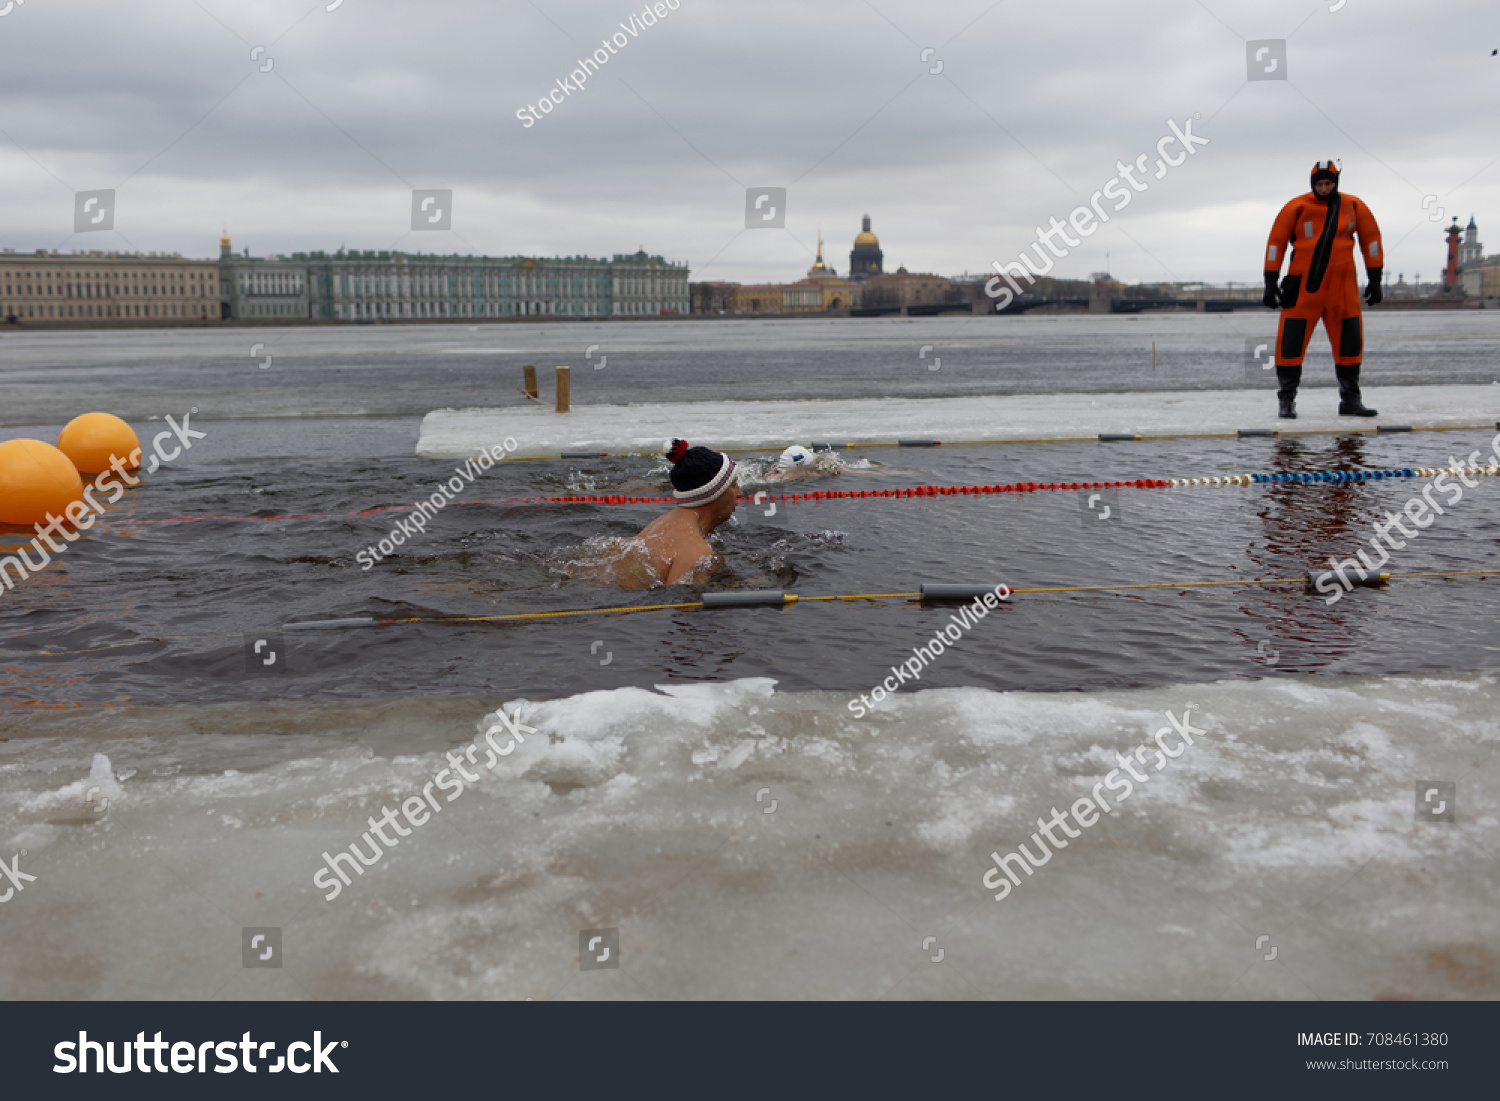 To swim in the winter in St. Petersburg Welcome to the October Pool